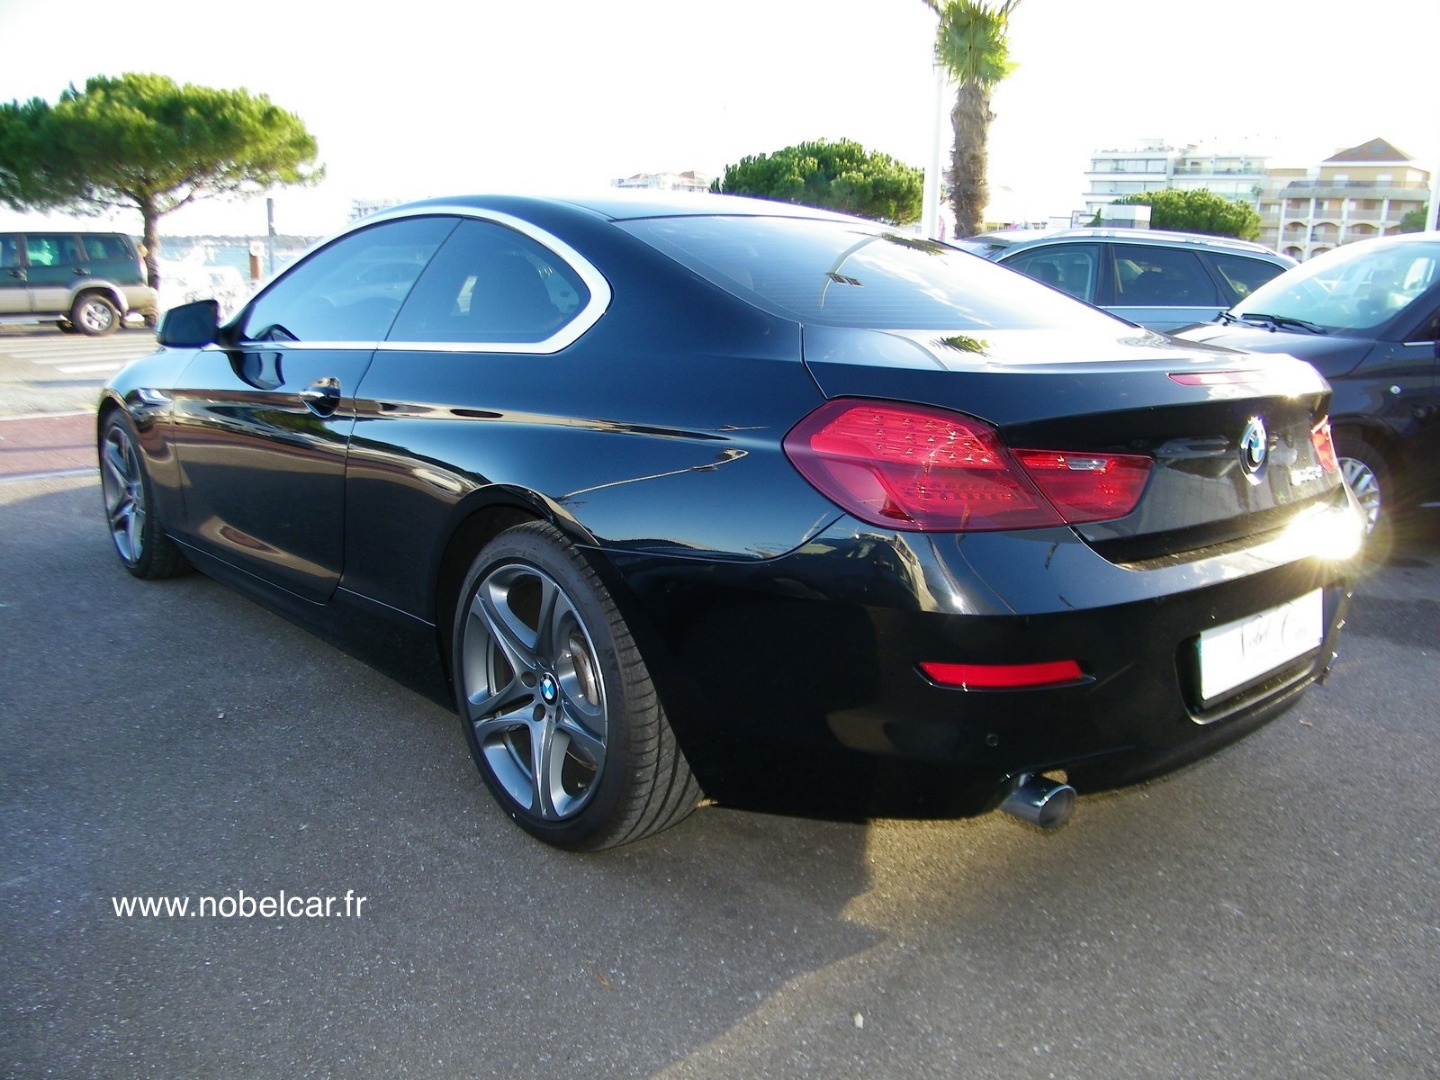 BMW série 6 F13 coupe 640D d'occasion gironde 33